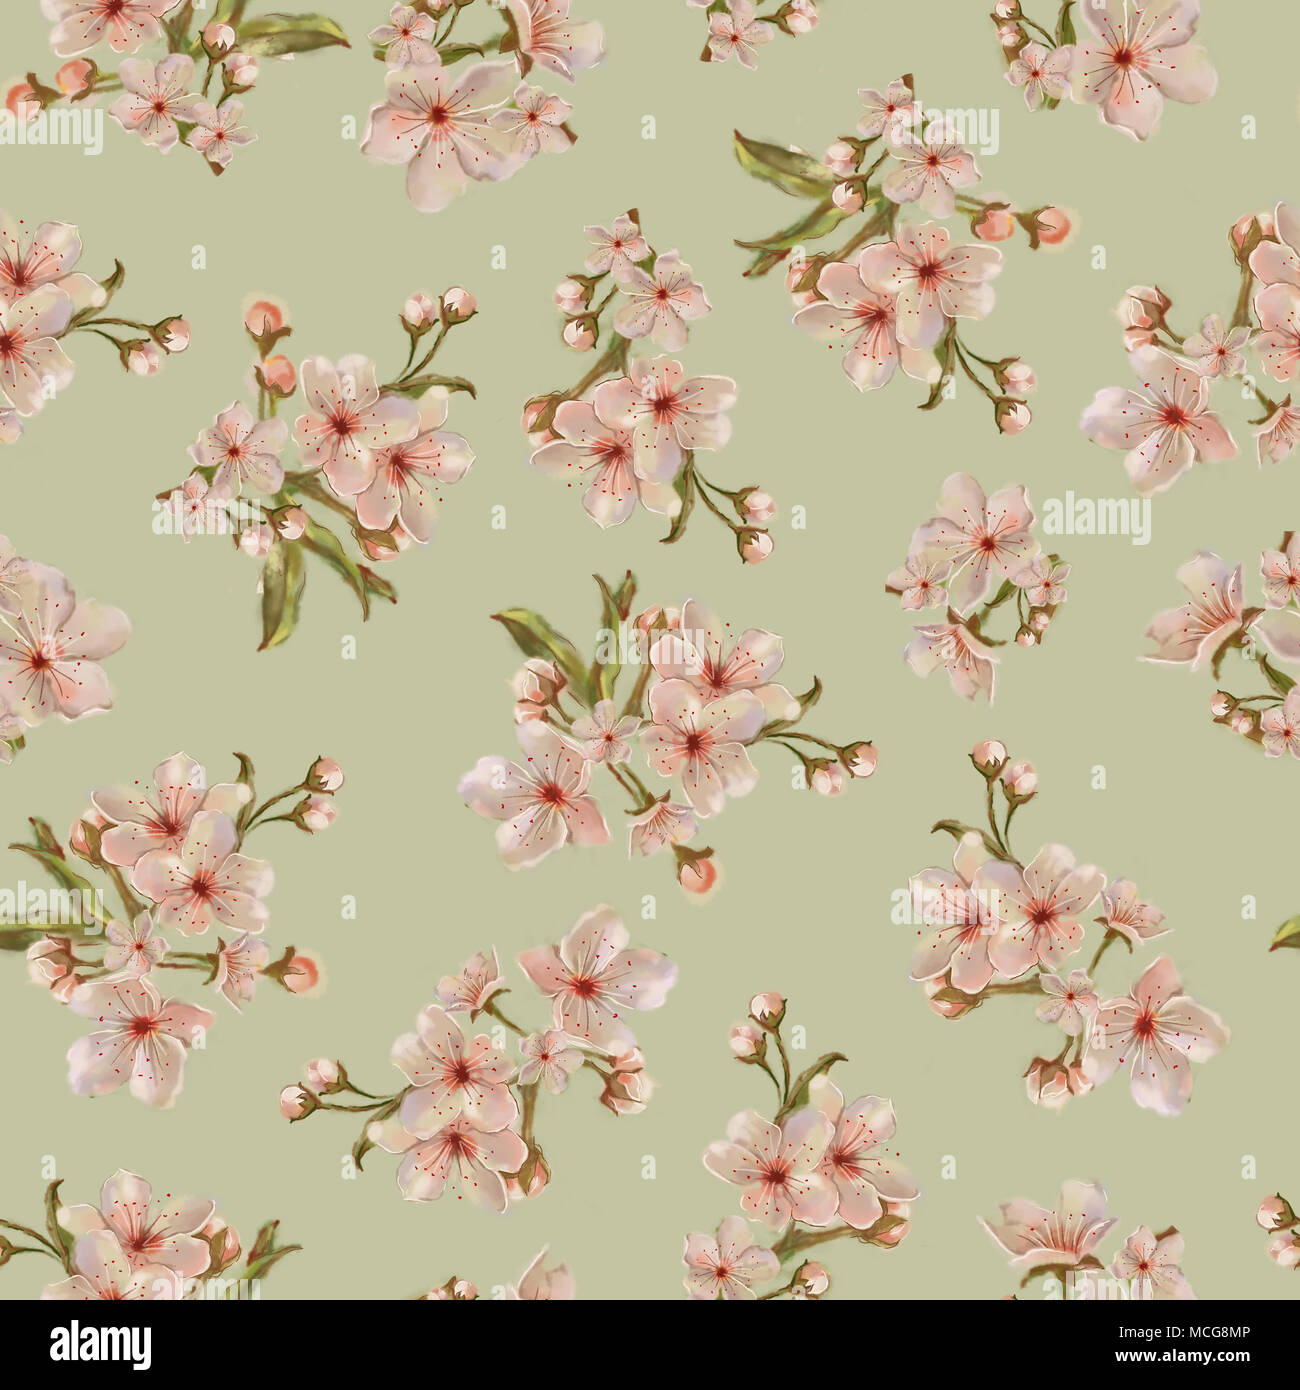 Peach bouquets on green background fruit tree floral seamless pattern for background print and textile watercolor hand painted botanical